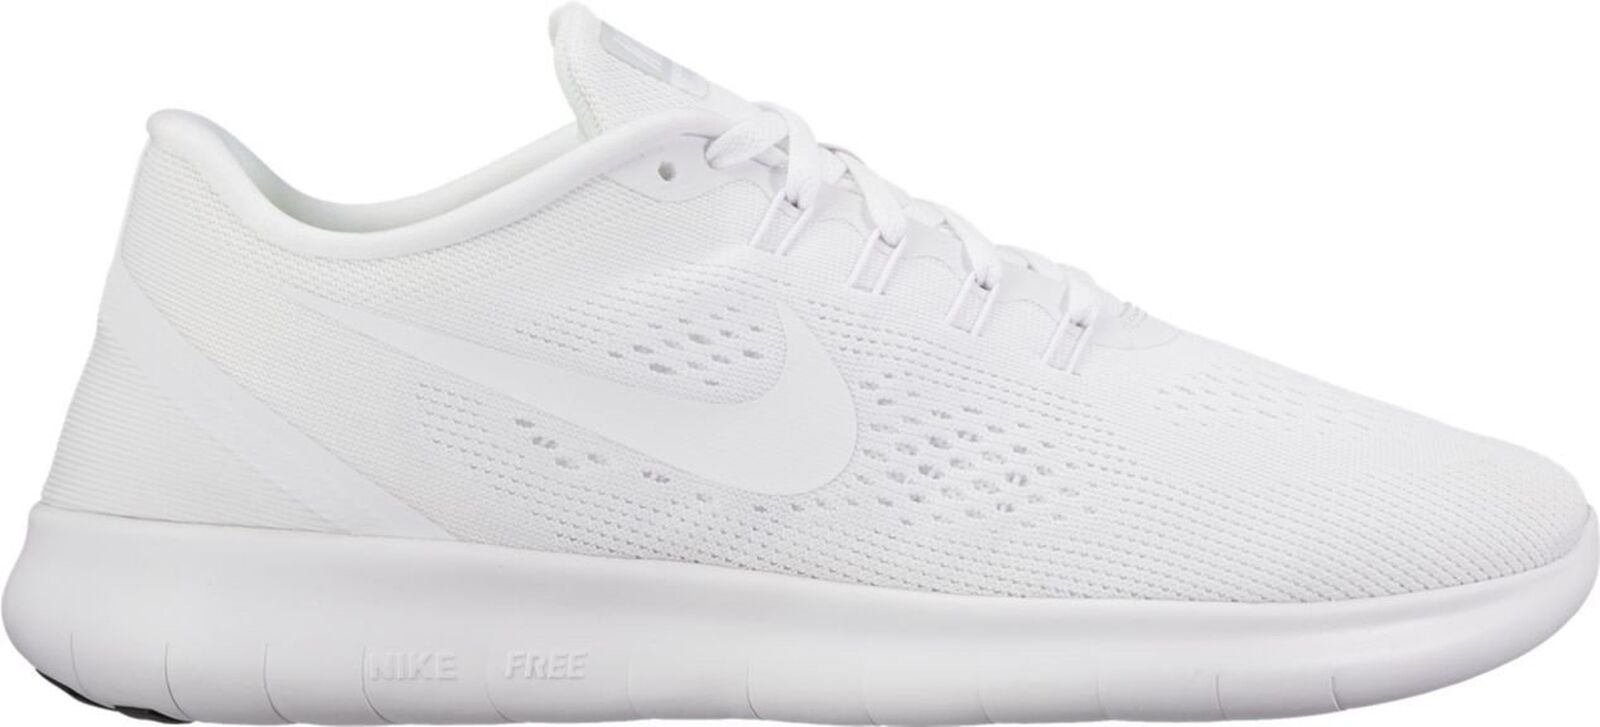 Nike Mens Free RN White/White Nylon Running Shoes 8.5 M US